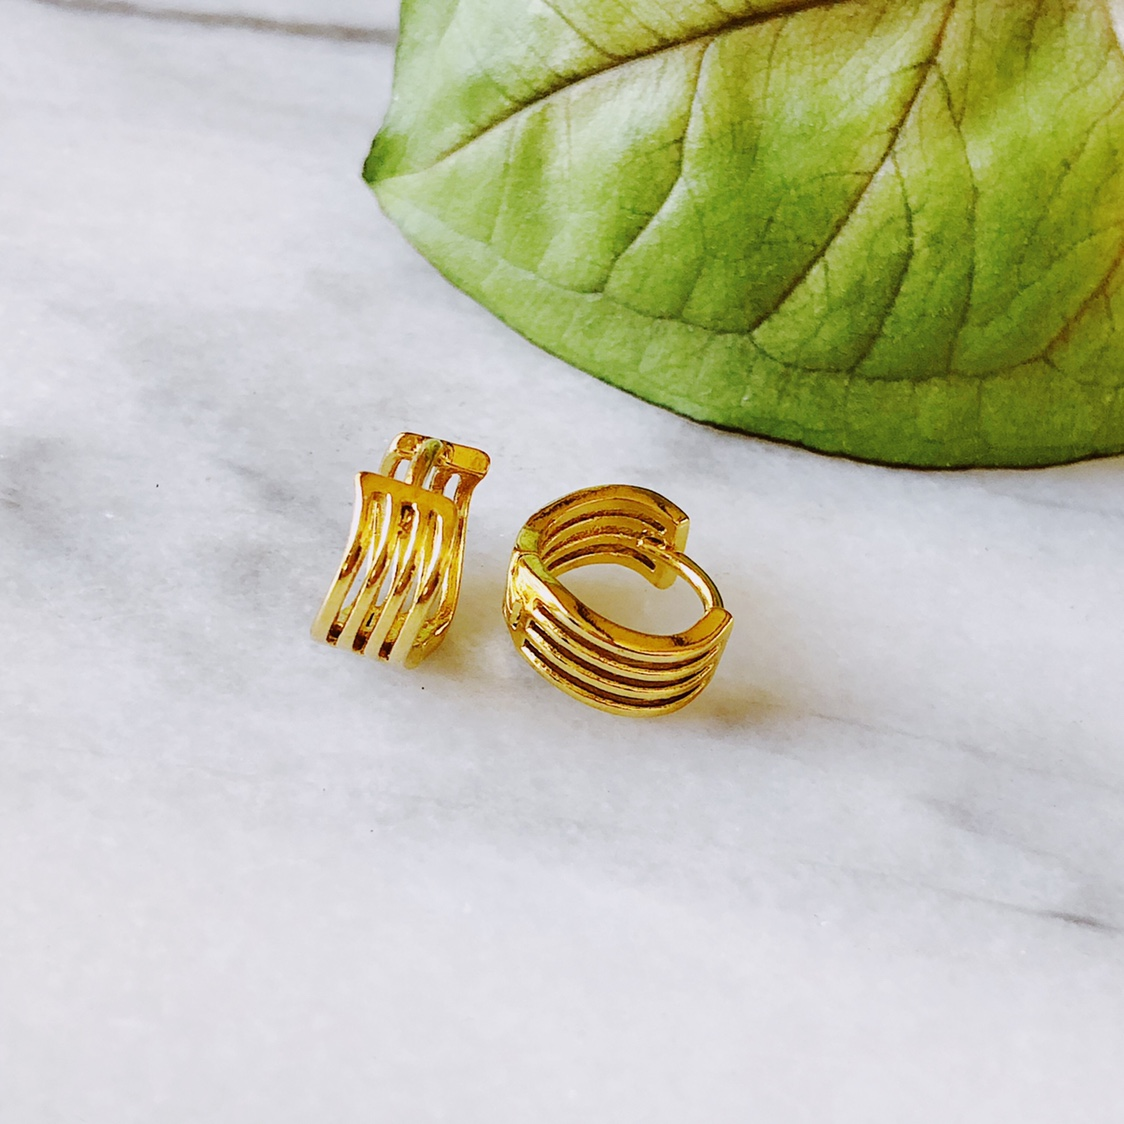 Infinity Band 18k Gold Plated Hoops!  These Hoop by Depop